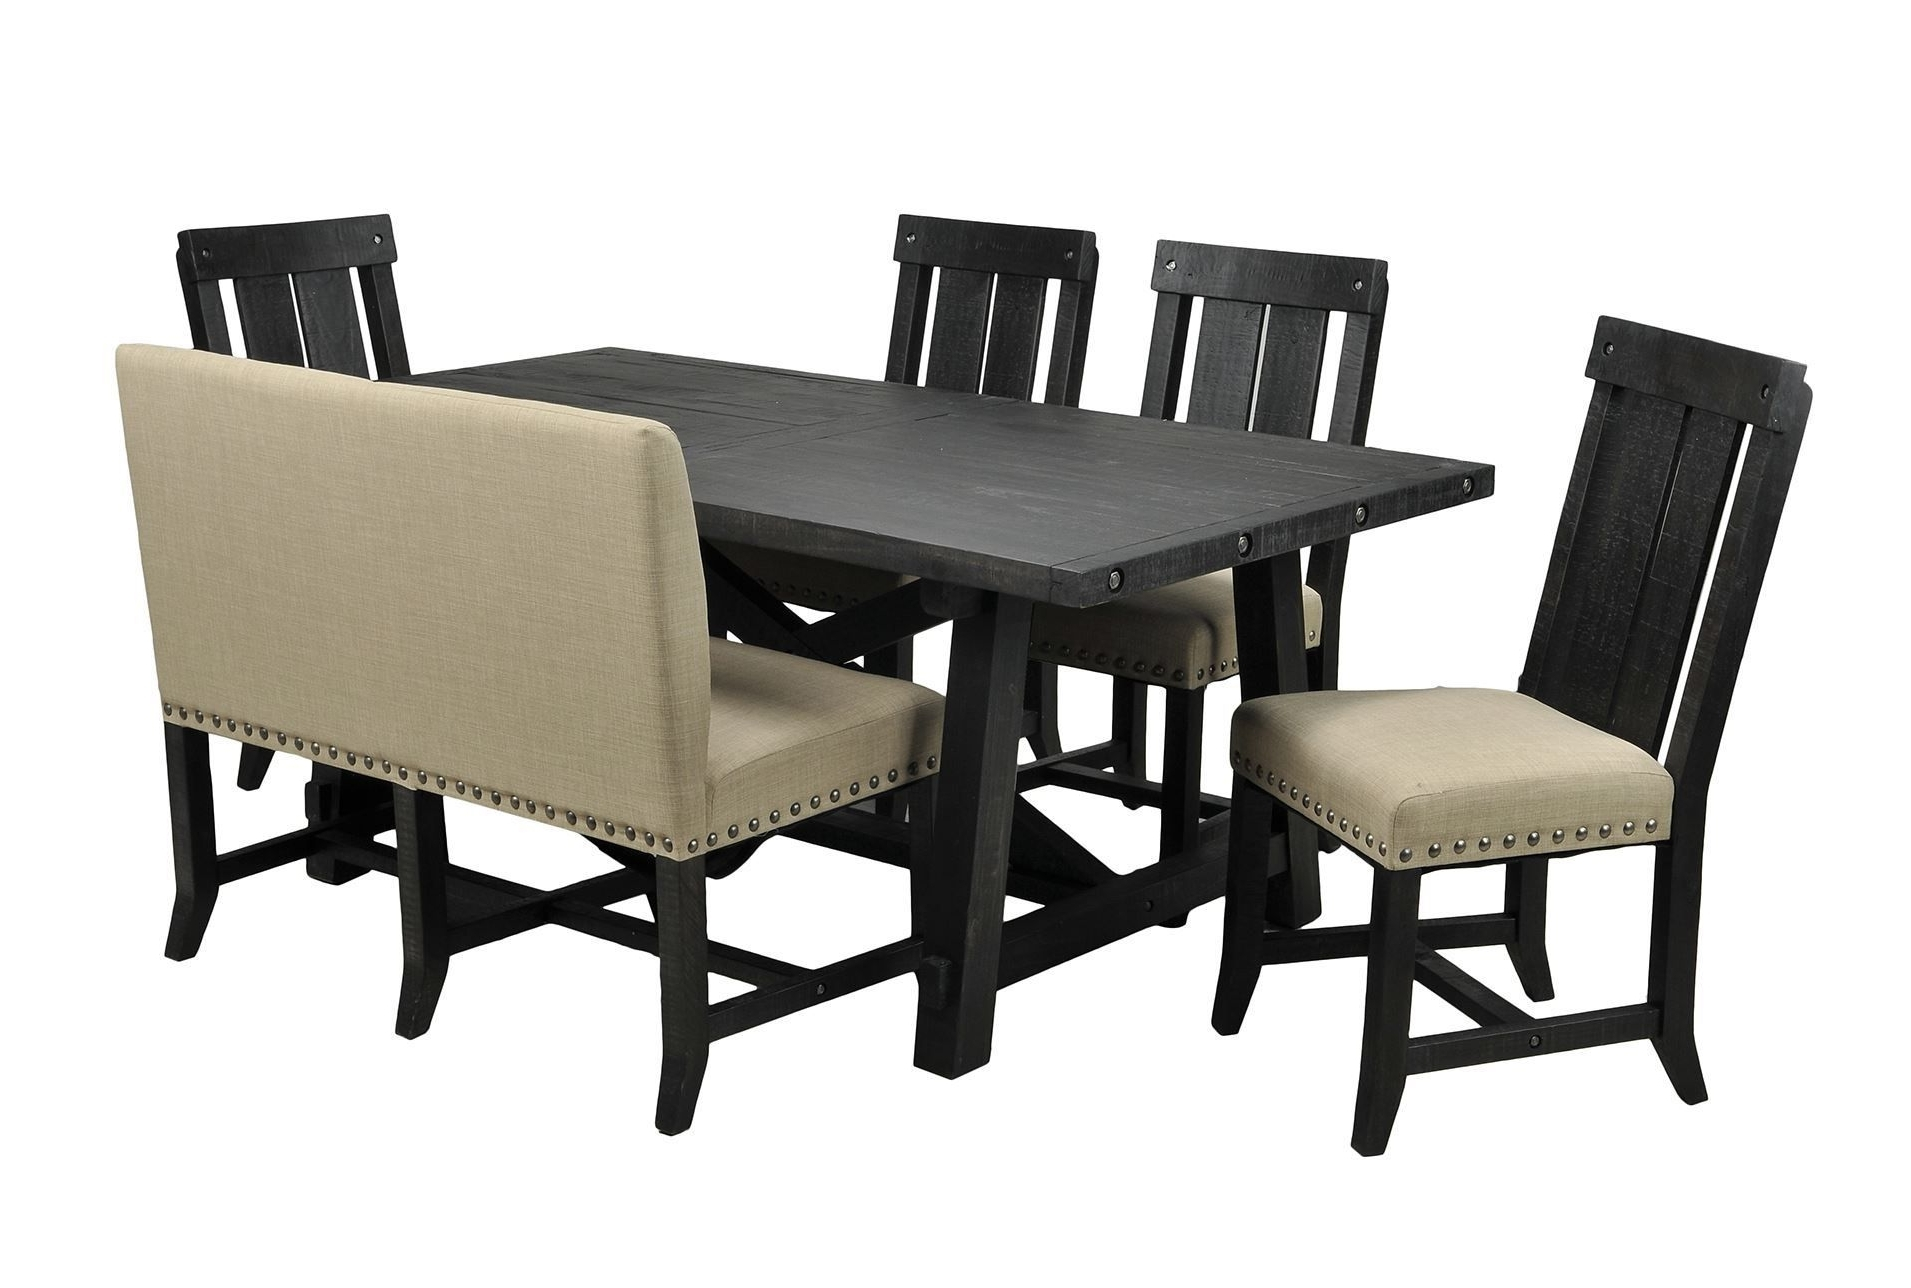 Jaxon 6 Piece Rectangle Dining Sets With Bench & Wood Chairs Pertaining To Famous Jaxon 6 Piece Rectangle Dining Set W/bench & Wood Chairs, Café (Gallery 3 of 25)